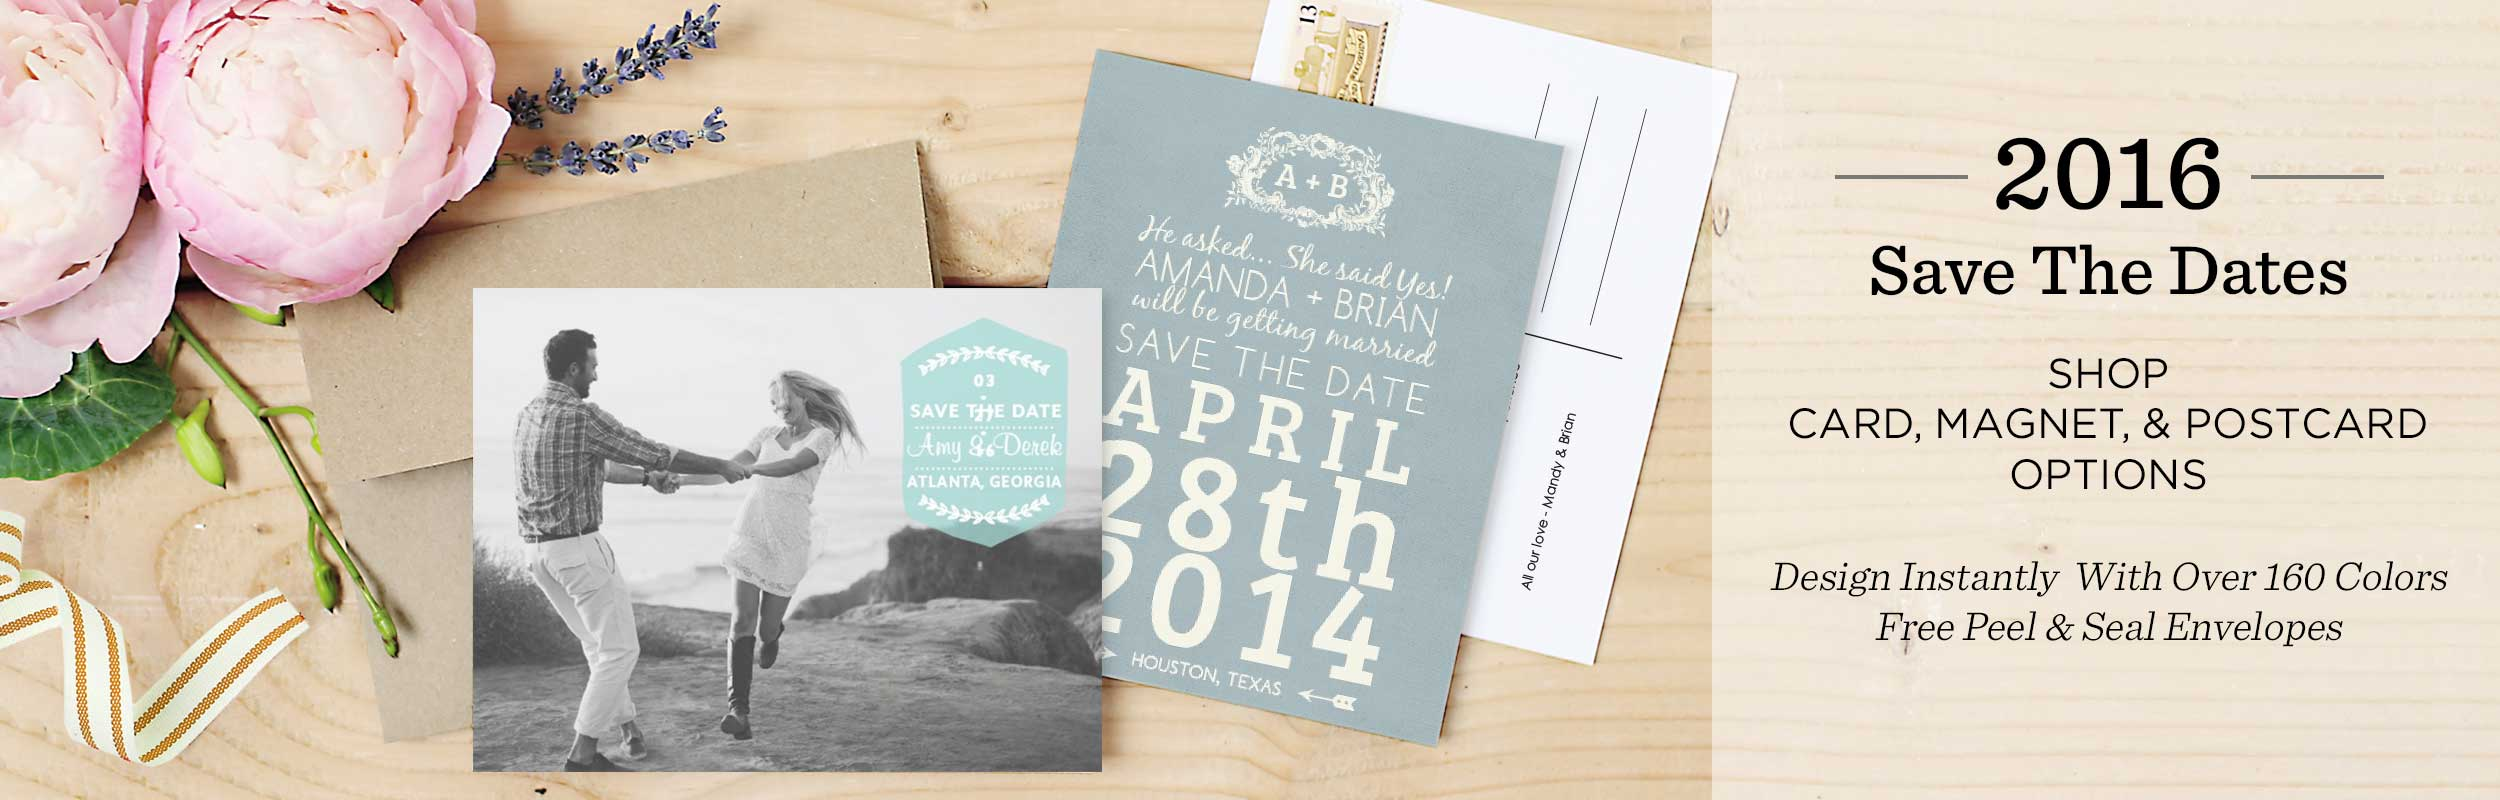 Save the Date Postcards | Wedding Paper Divas